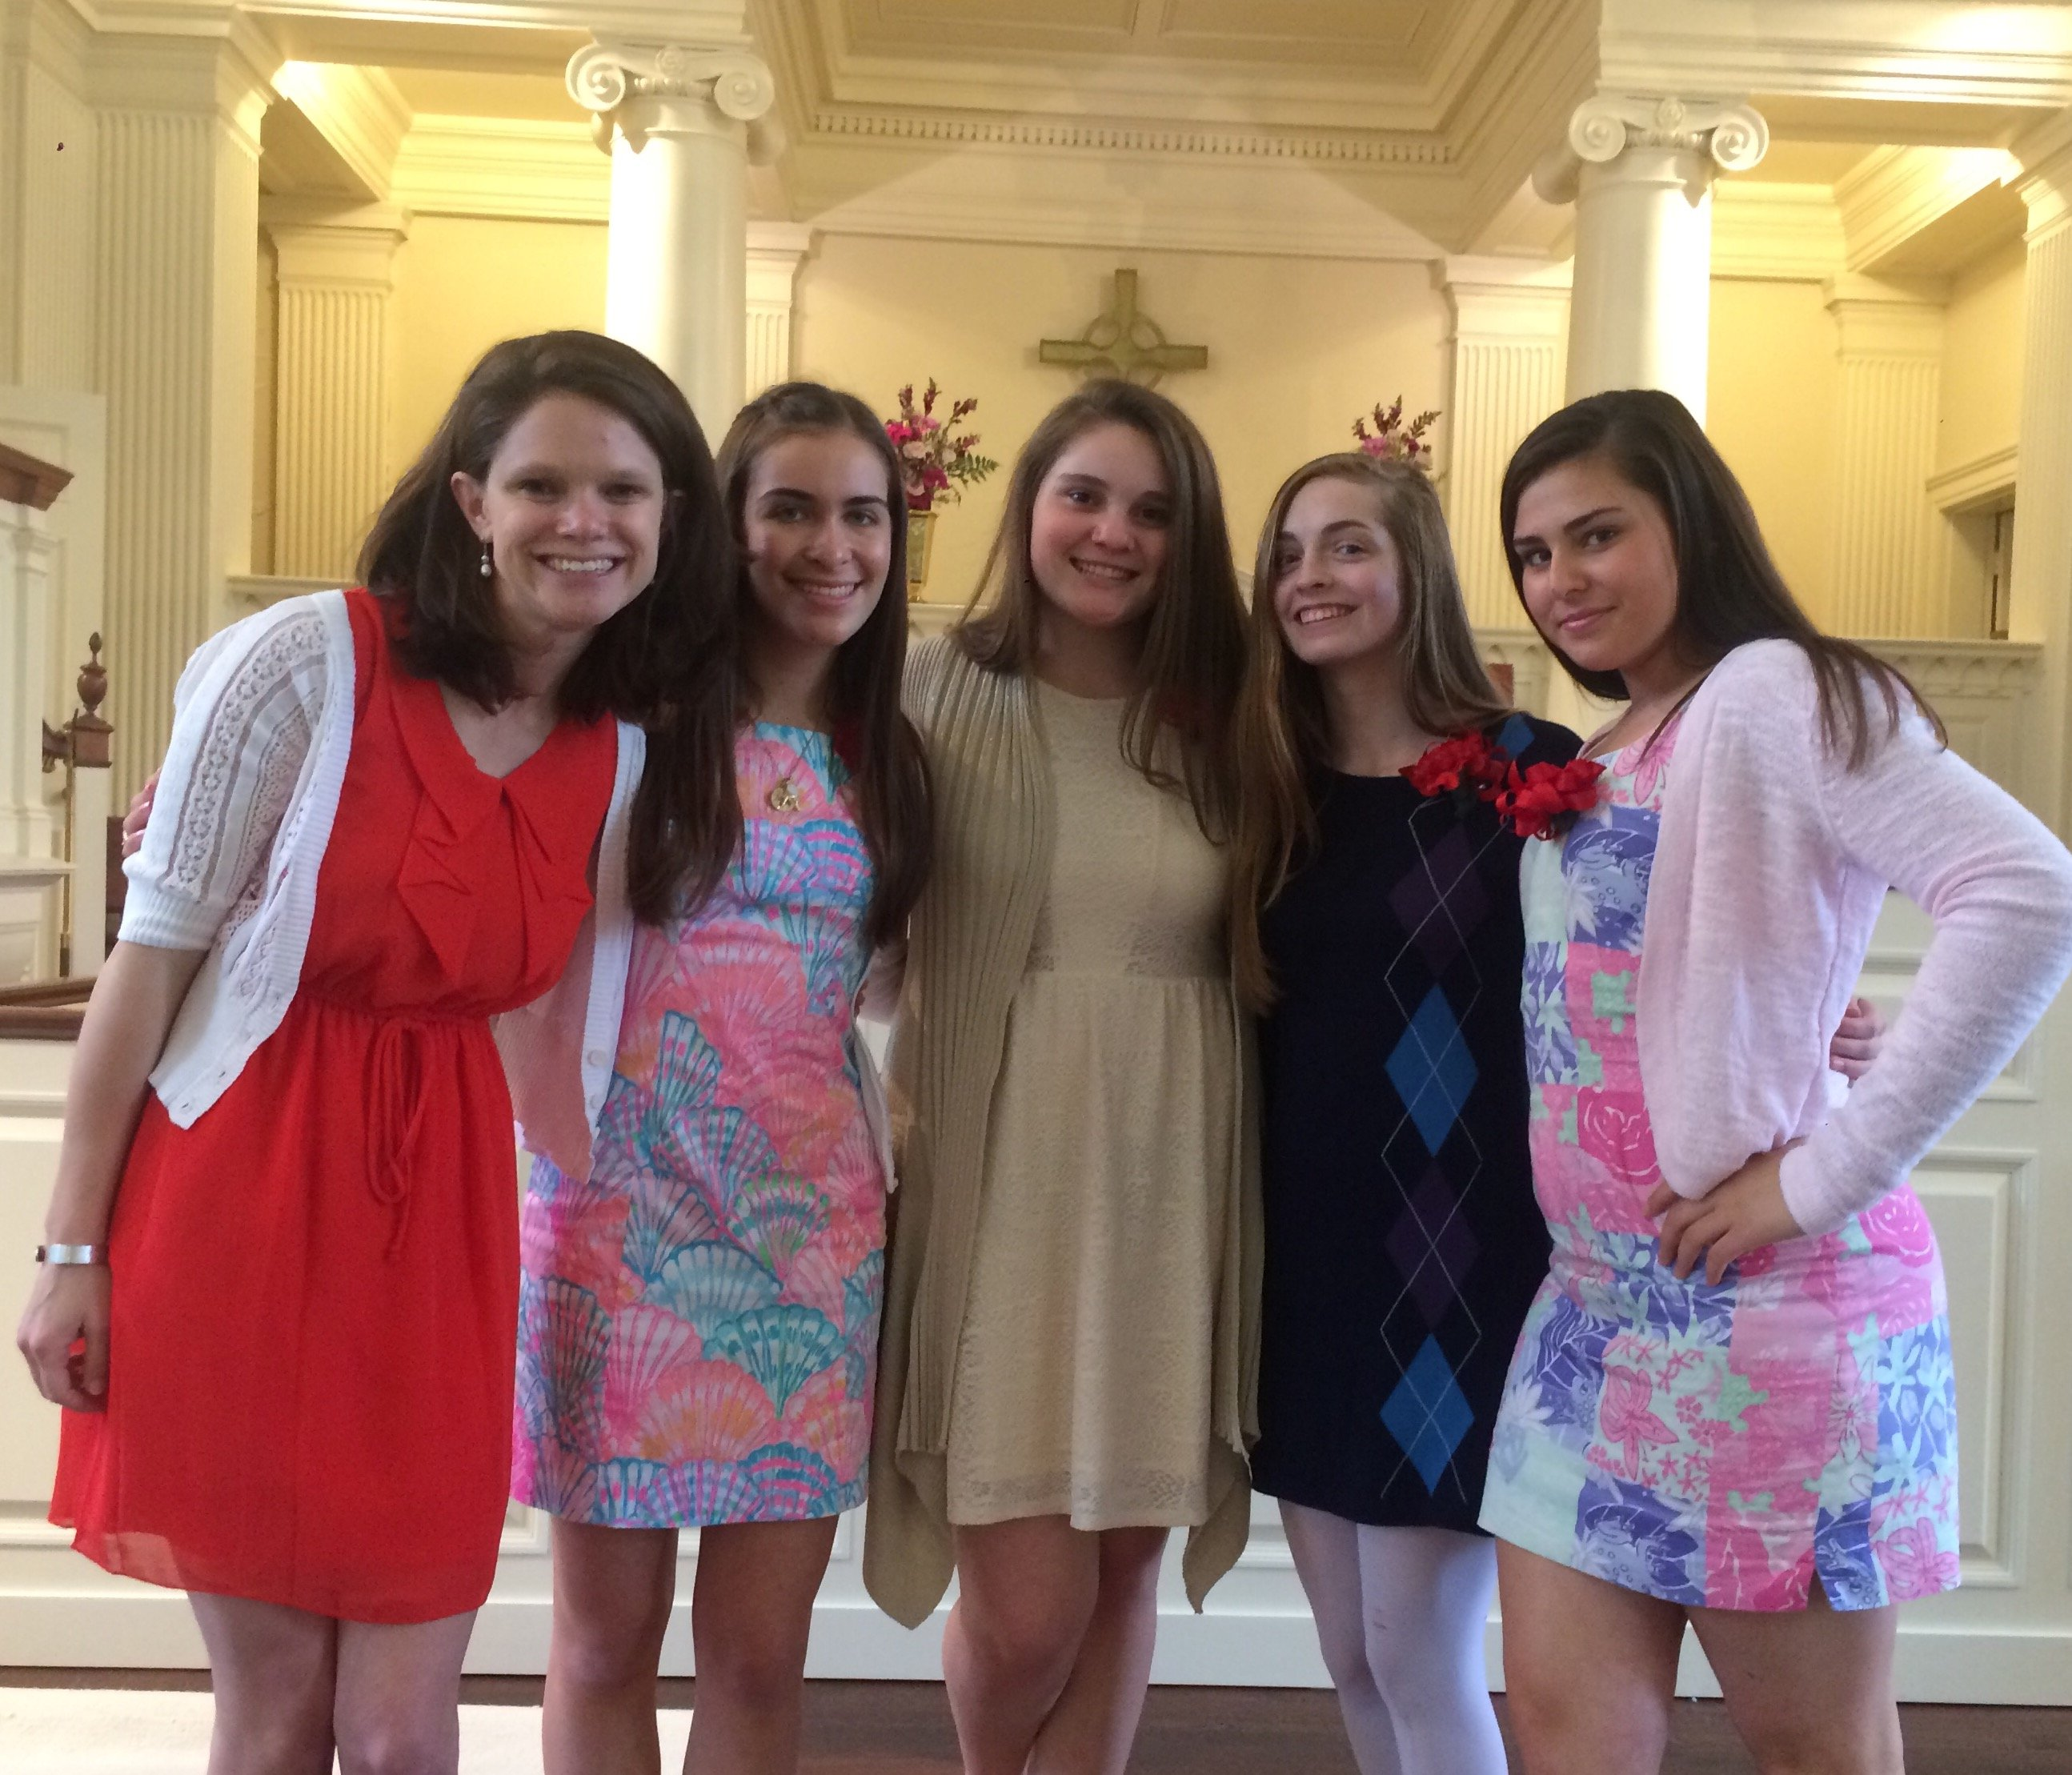 Newly confirmed girls, May 1, 2016